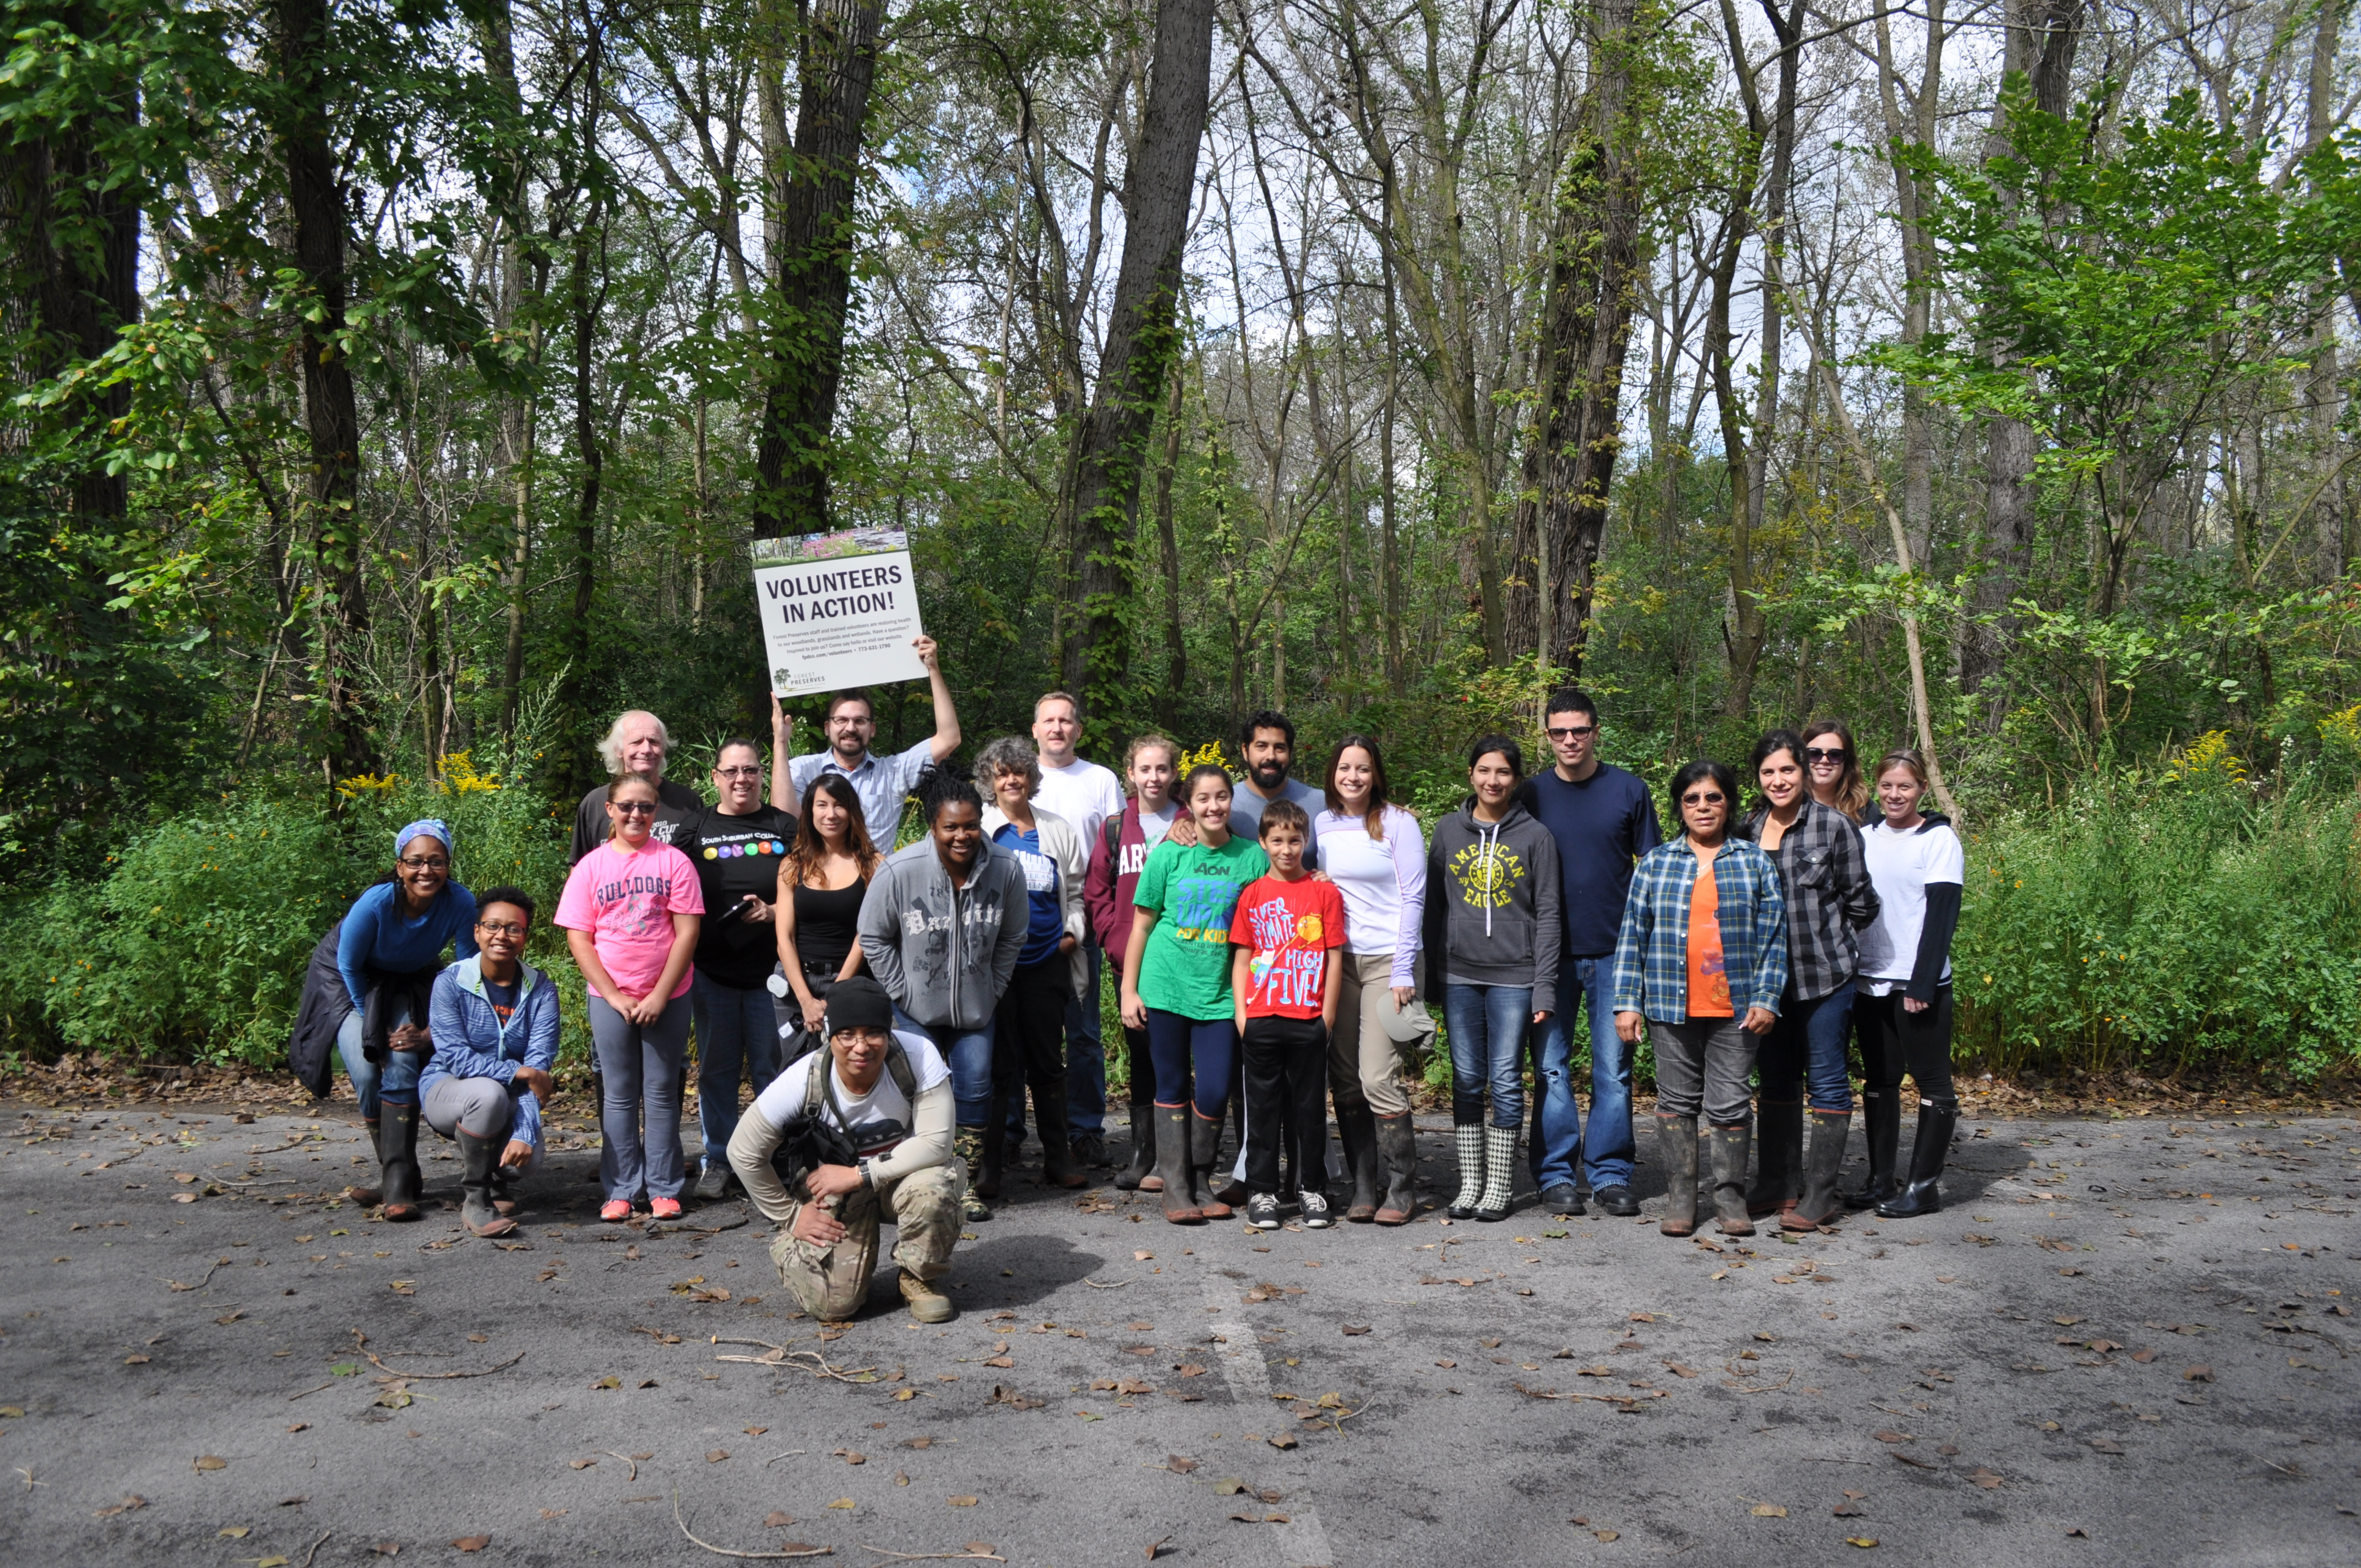 Habitat restoration volunteers of all ages gather for a photo in a wooded area. One person holds up a